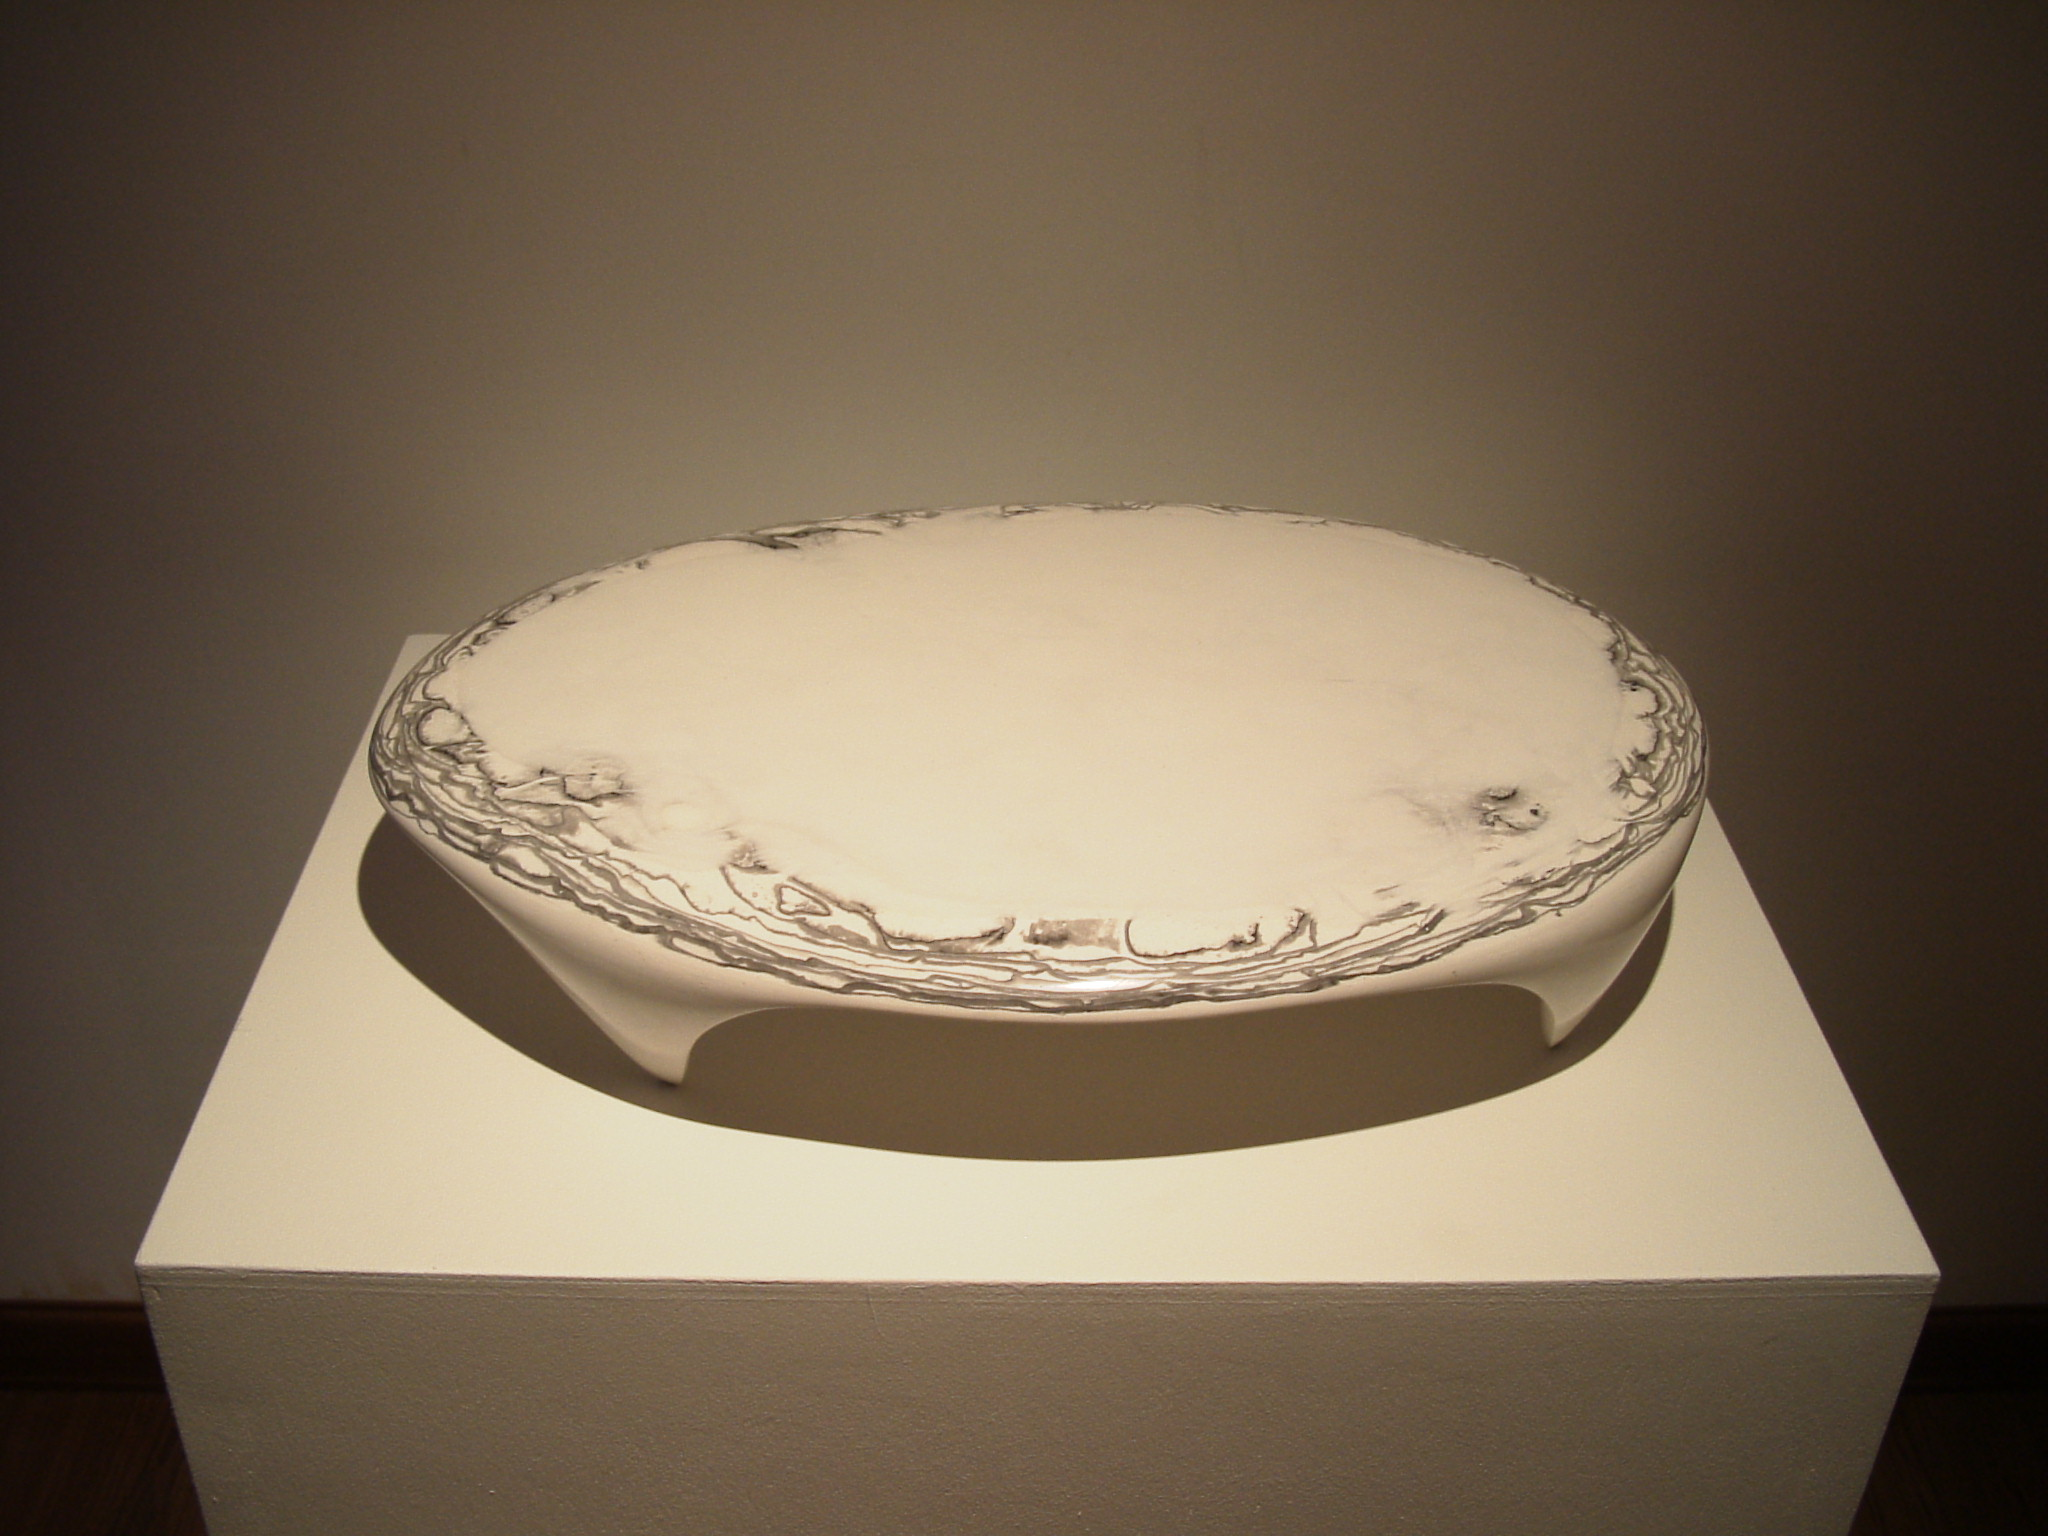 A Respiration of the Earth 04-8, 60x41x12cm, plaster, korean ink, 2004.JPG